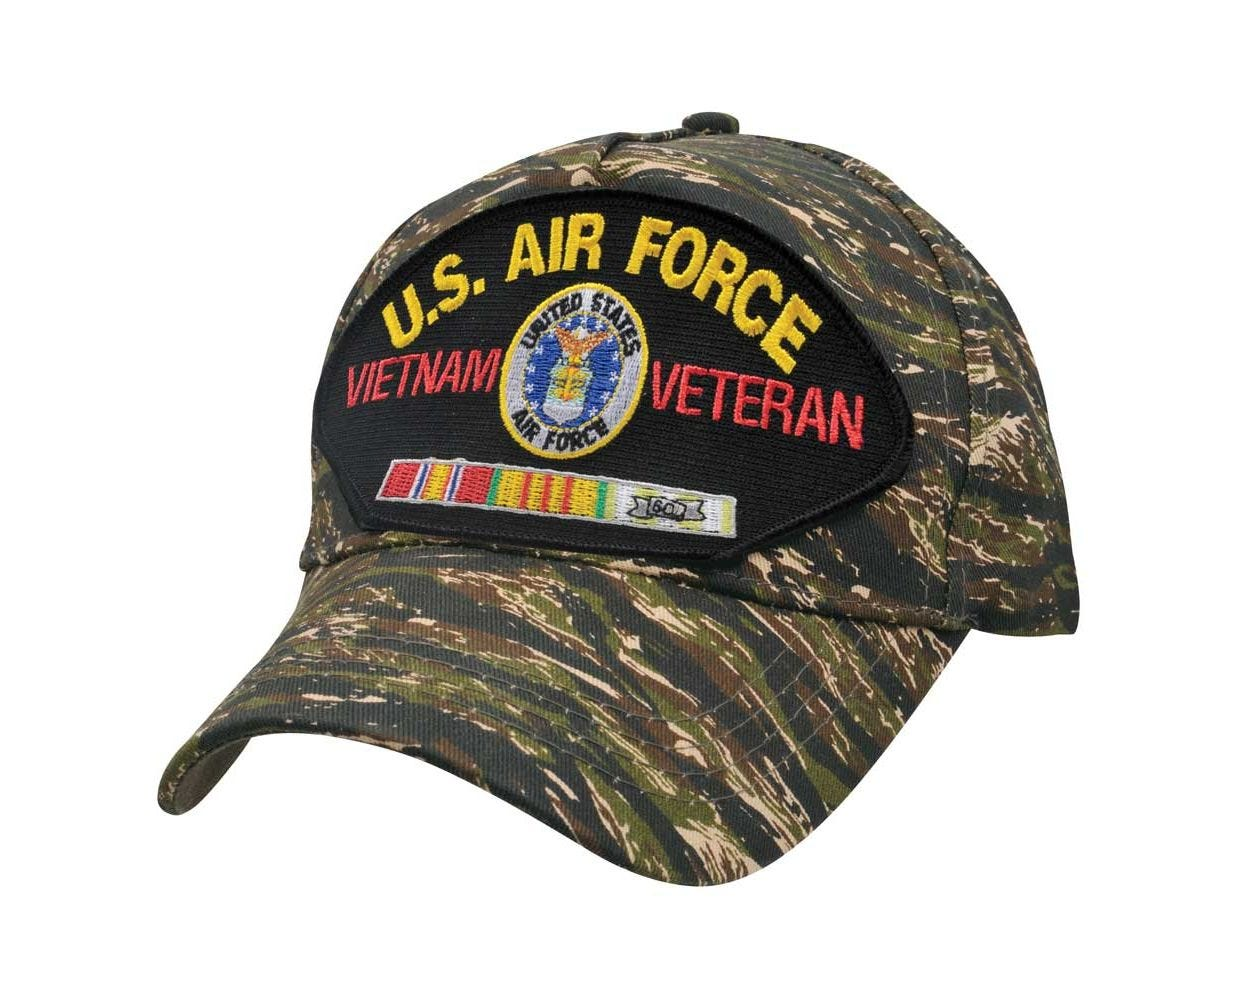 AIR NATIONAL GUARD Ball Cap ANG US Air Force USAF Reserve OEF OIF Gulf War Hat